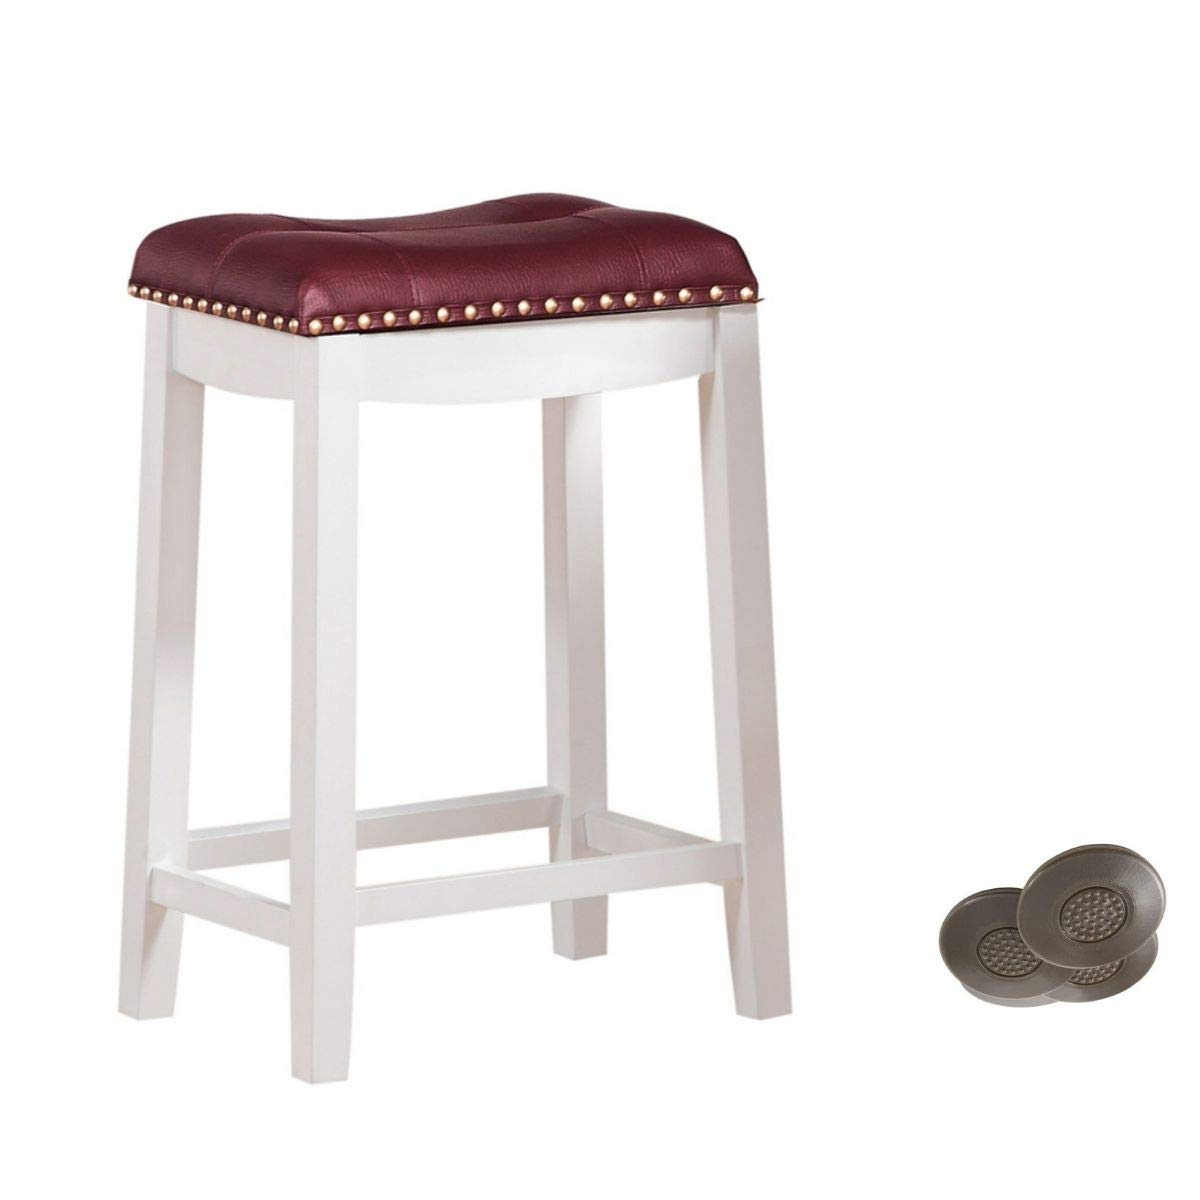 Angel Line 43418-21 Cambridge bar stools, 24'' Set of 1, White w/Dark Red Cushion and Adhesives Floor Protector